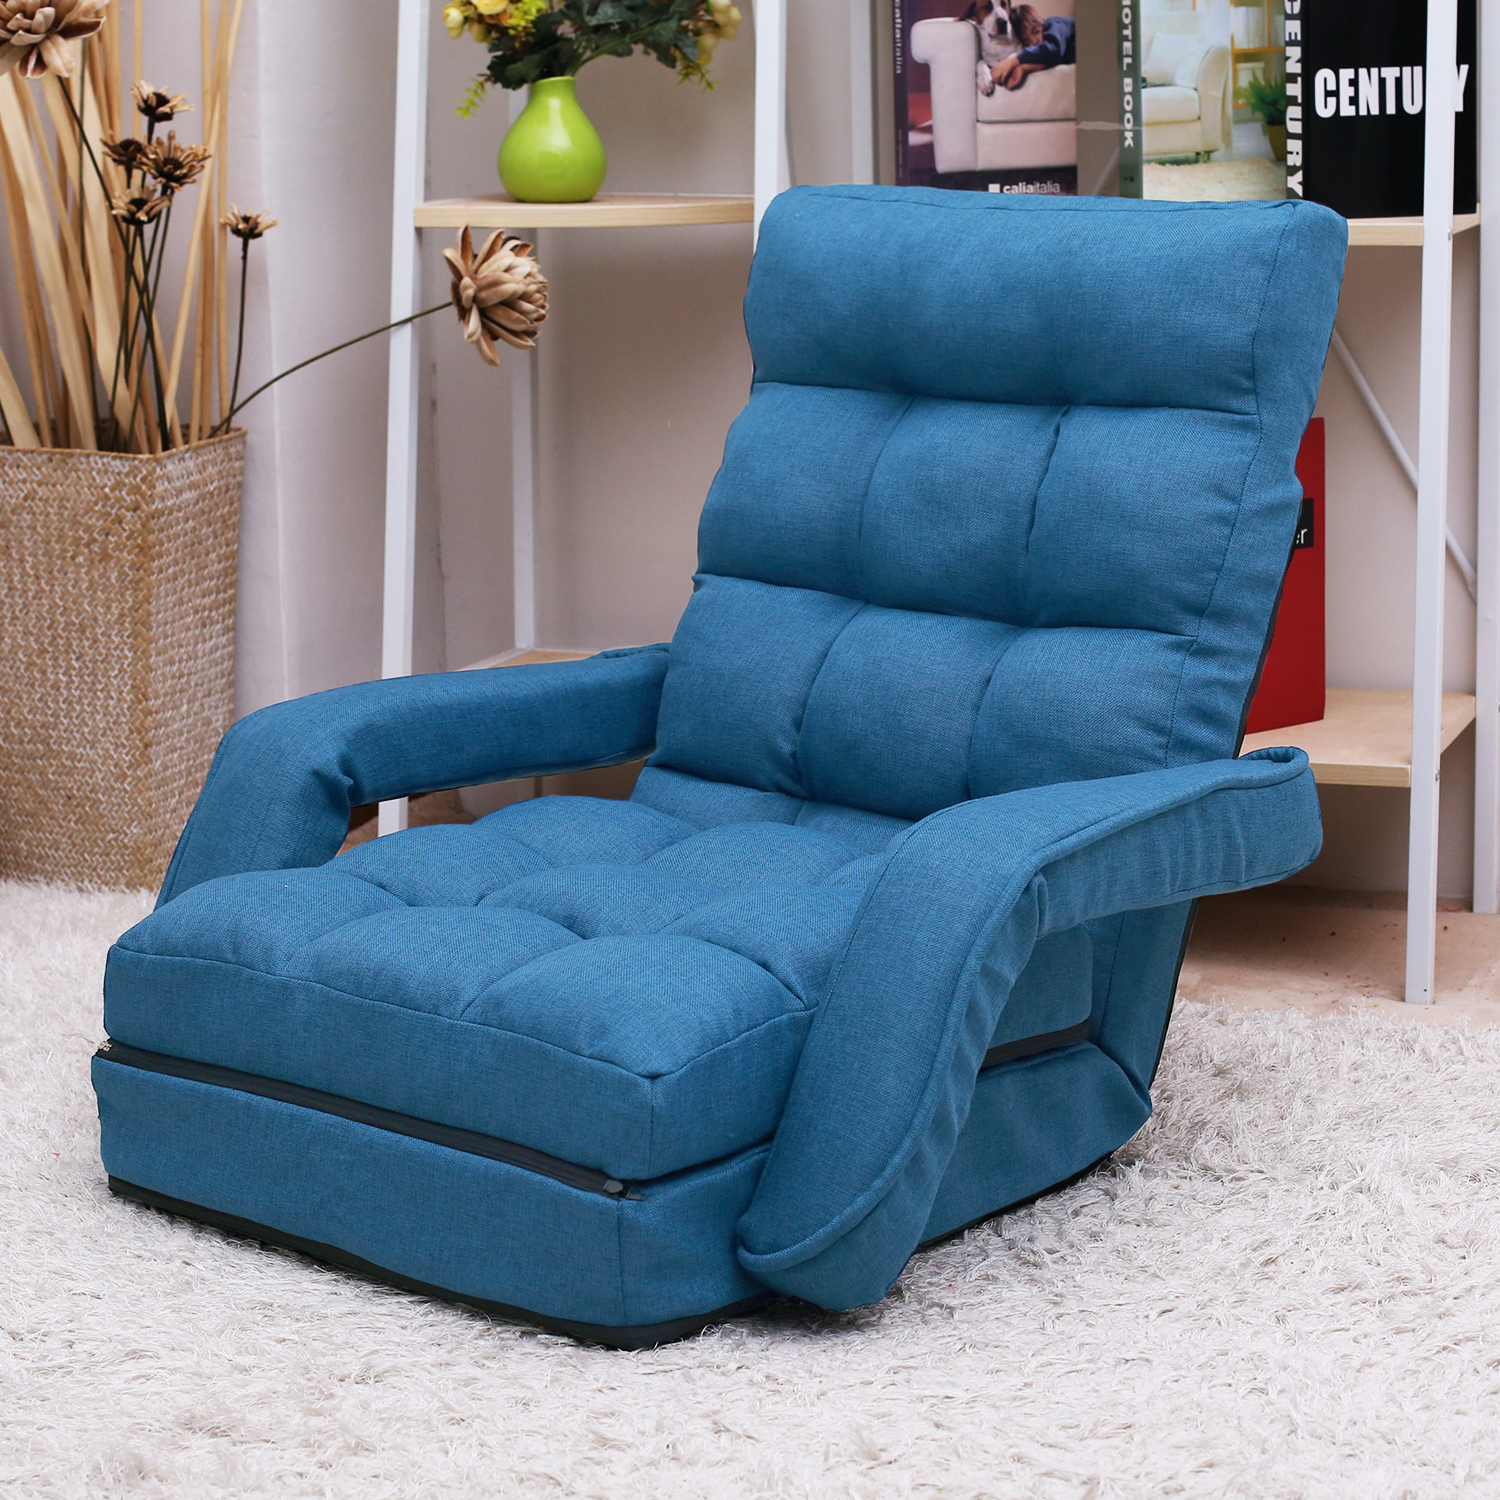 Folding Floor Chair Set With Adjustable Backrest And Within Folding Sofa Chairs (View 7 of 15)